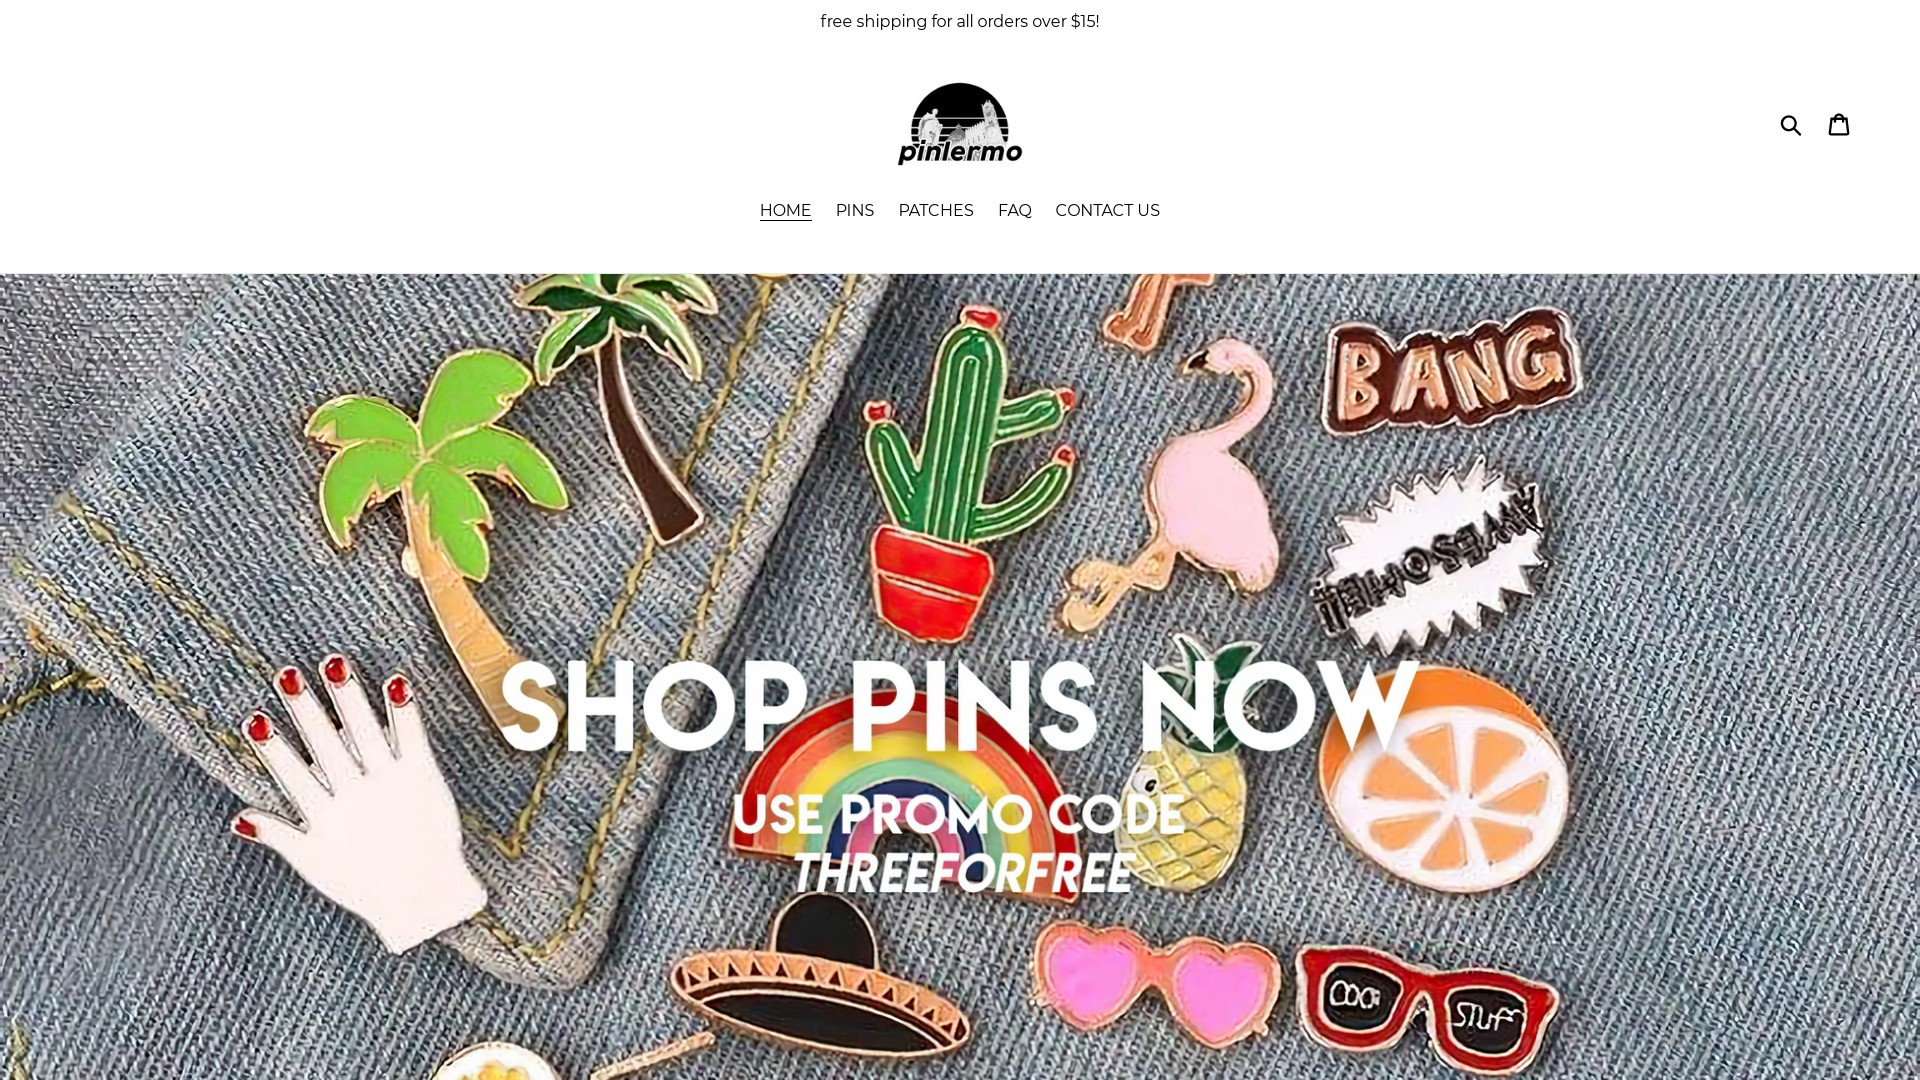 Is Pinlermo a Scam? Review of the Online Store